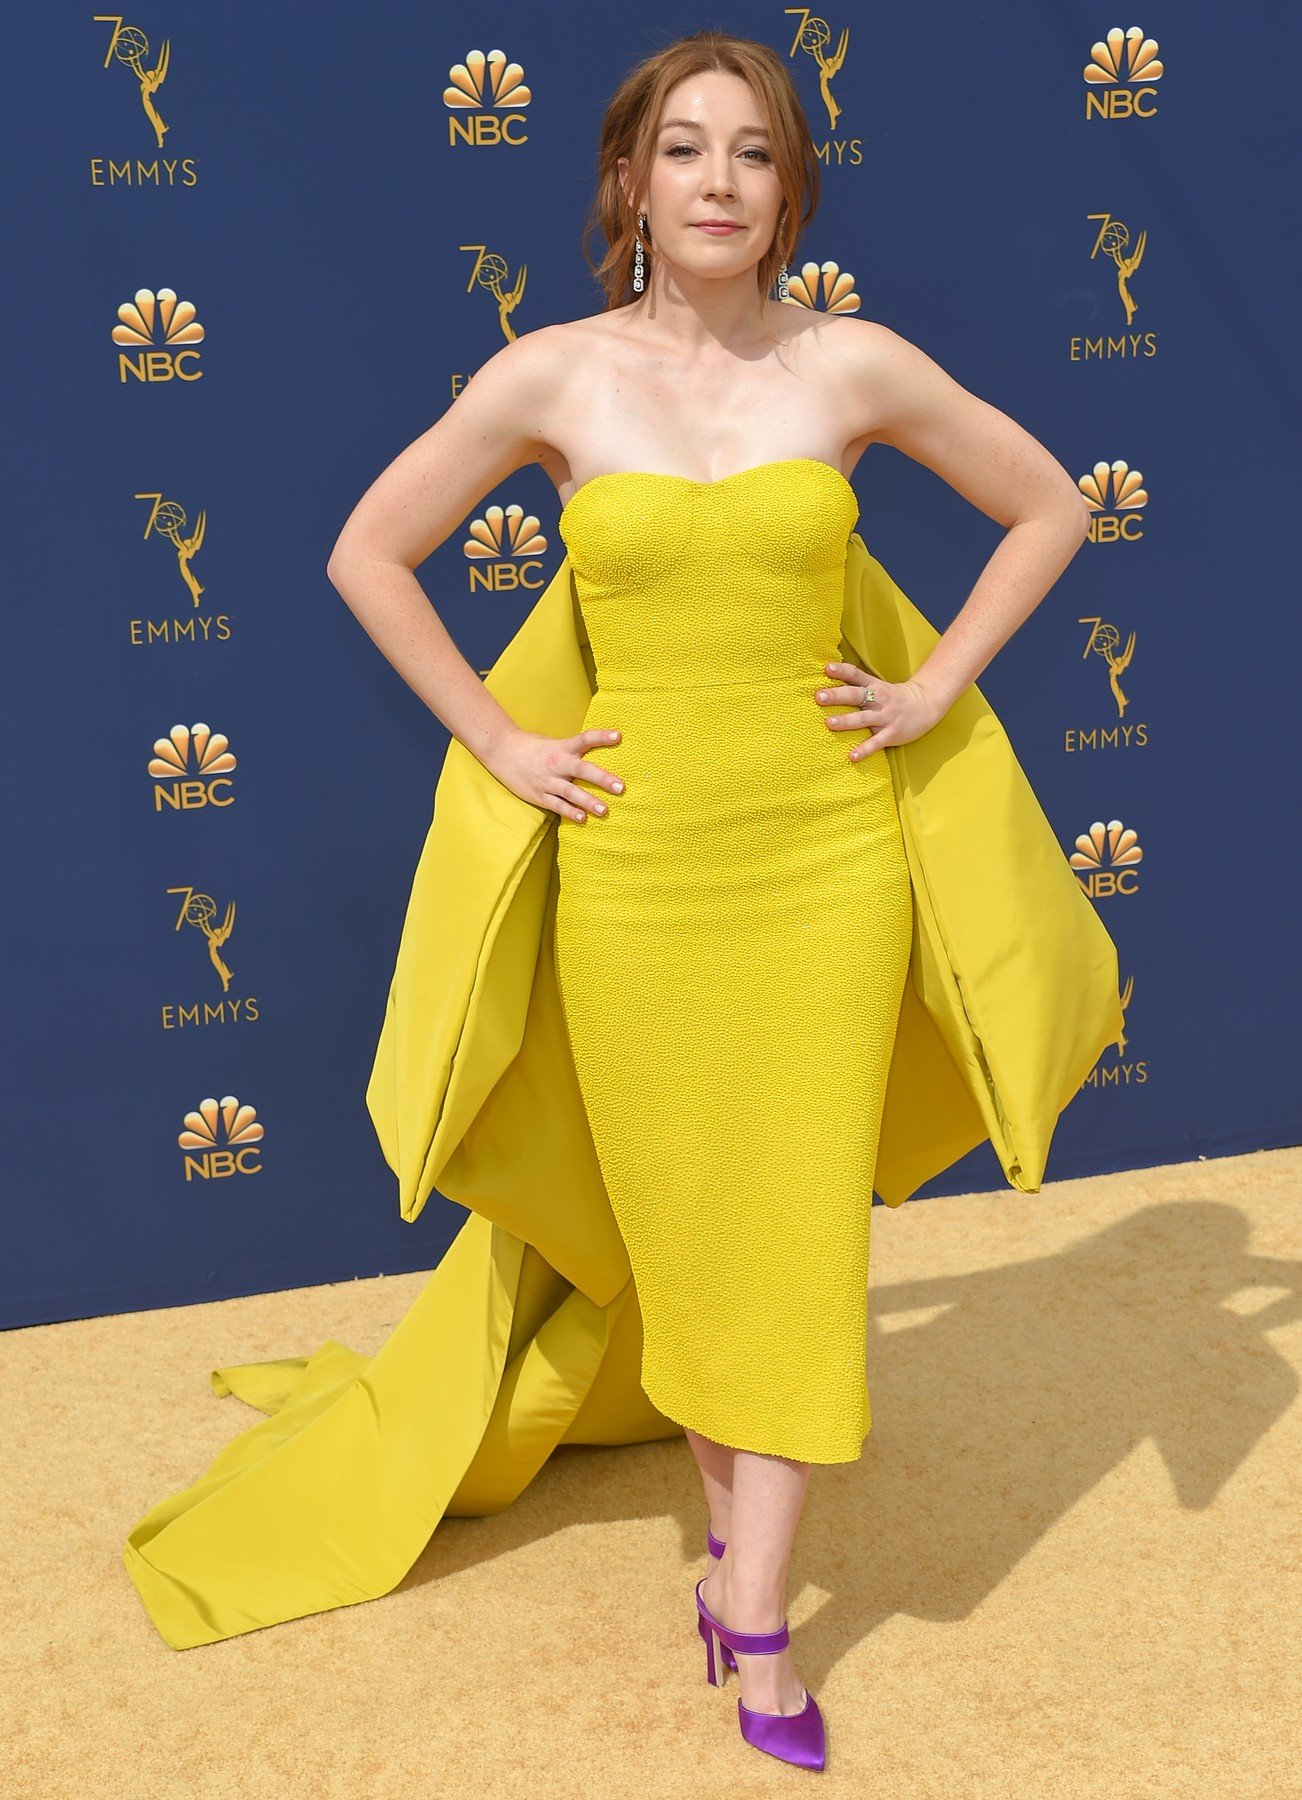 70th Primetime Emmy Awards held at Microsoft Theatre L.A. 17 Sep 2018, Image: 387174532, License: Rights-managed, Restrictions: World Rights, Model Release: no, Credit line: Profimedia, Mega Agency